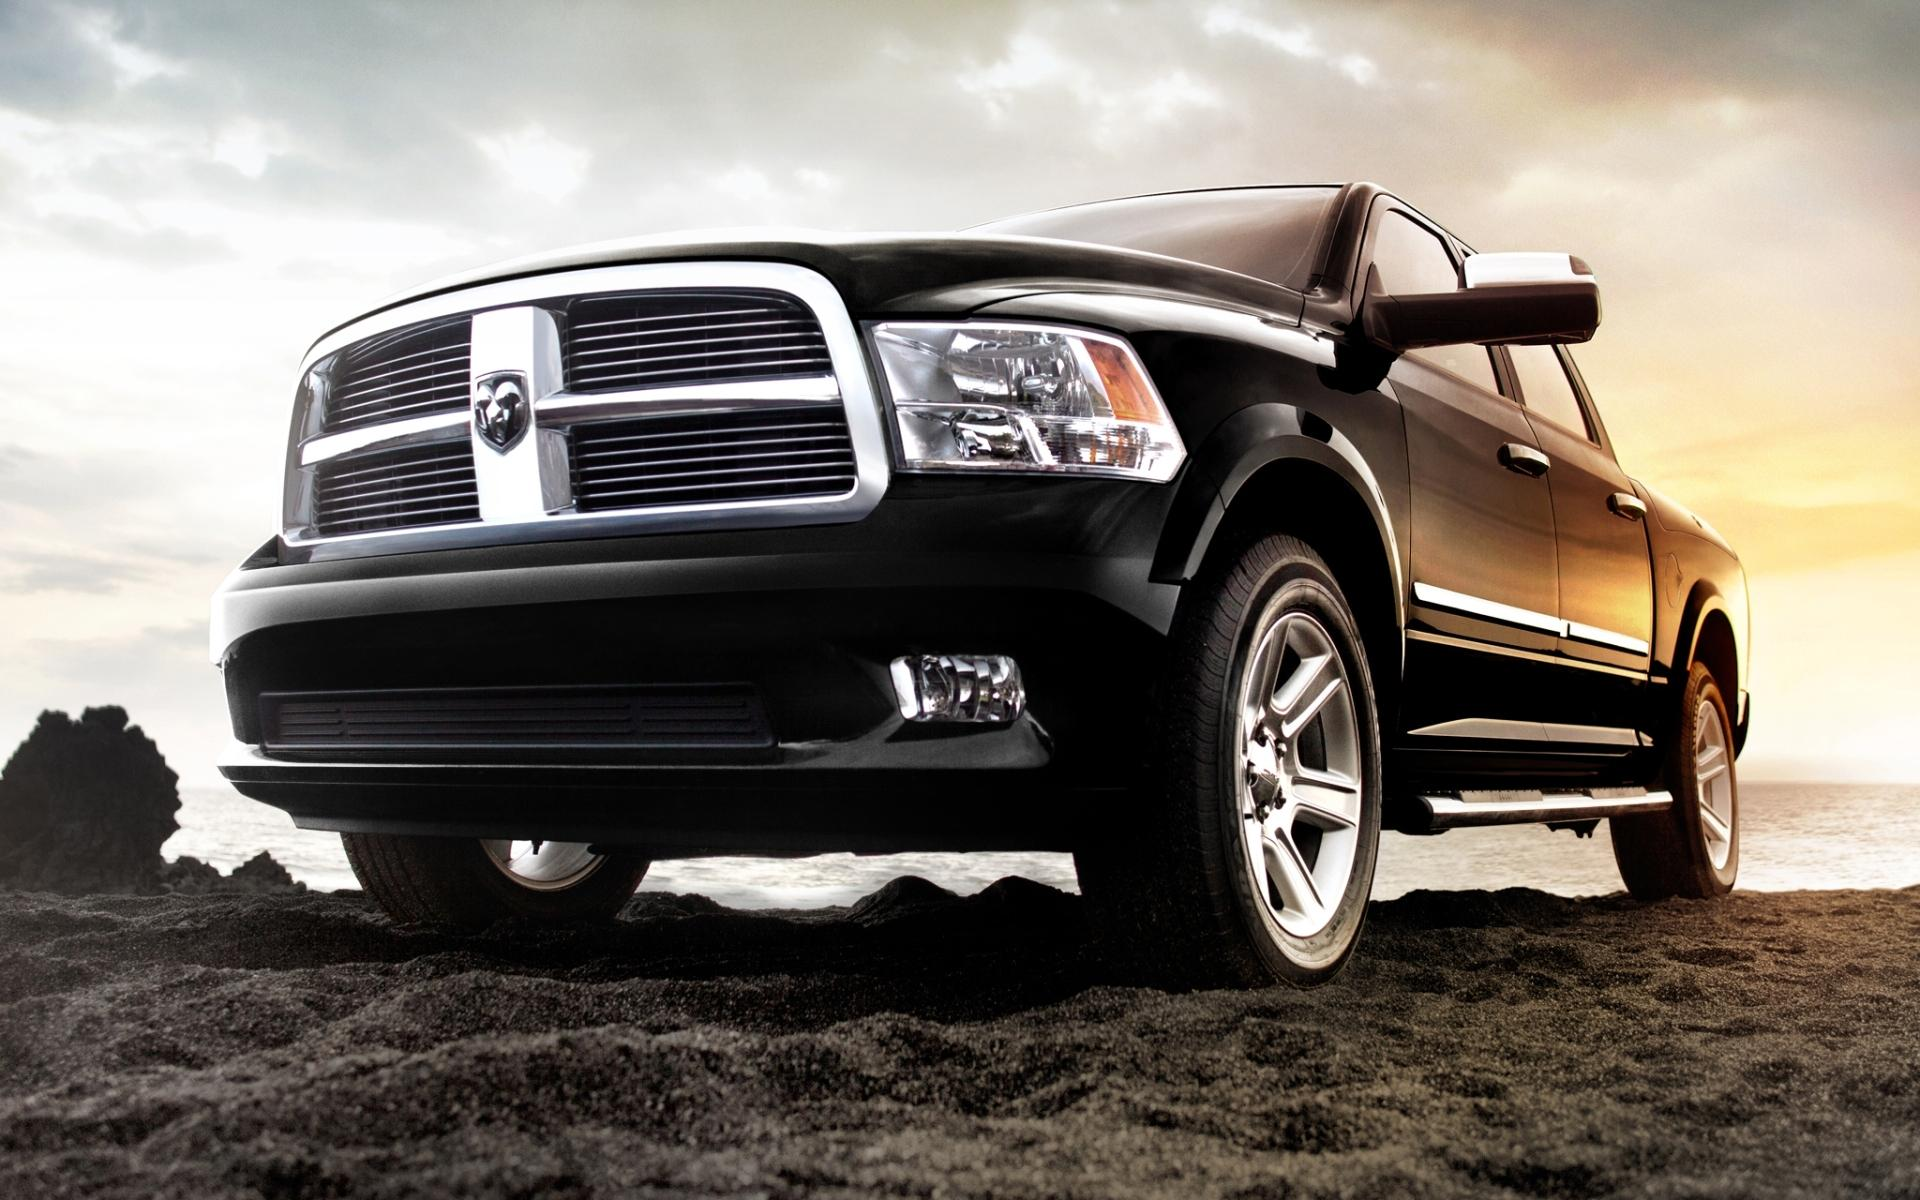 Pictures Of Dodge Ram Hd Px September 20 1920x1200 Wallpaper Teahub Io